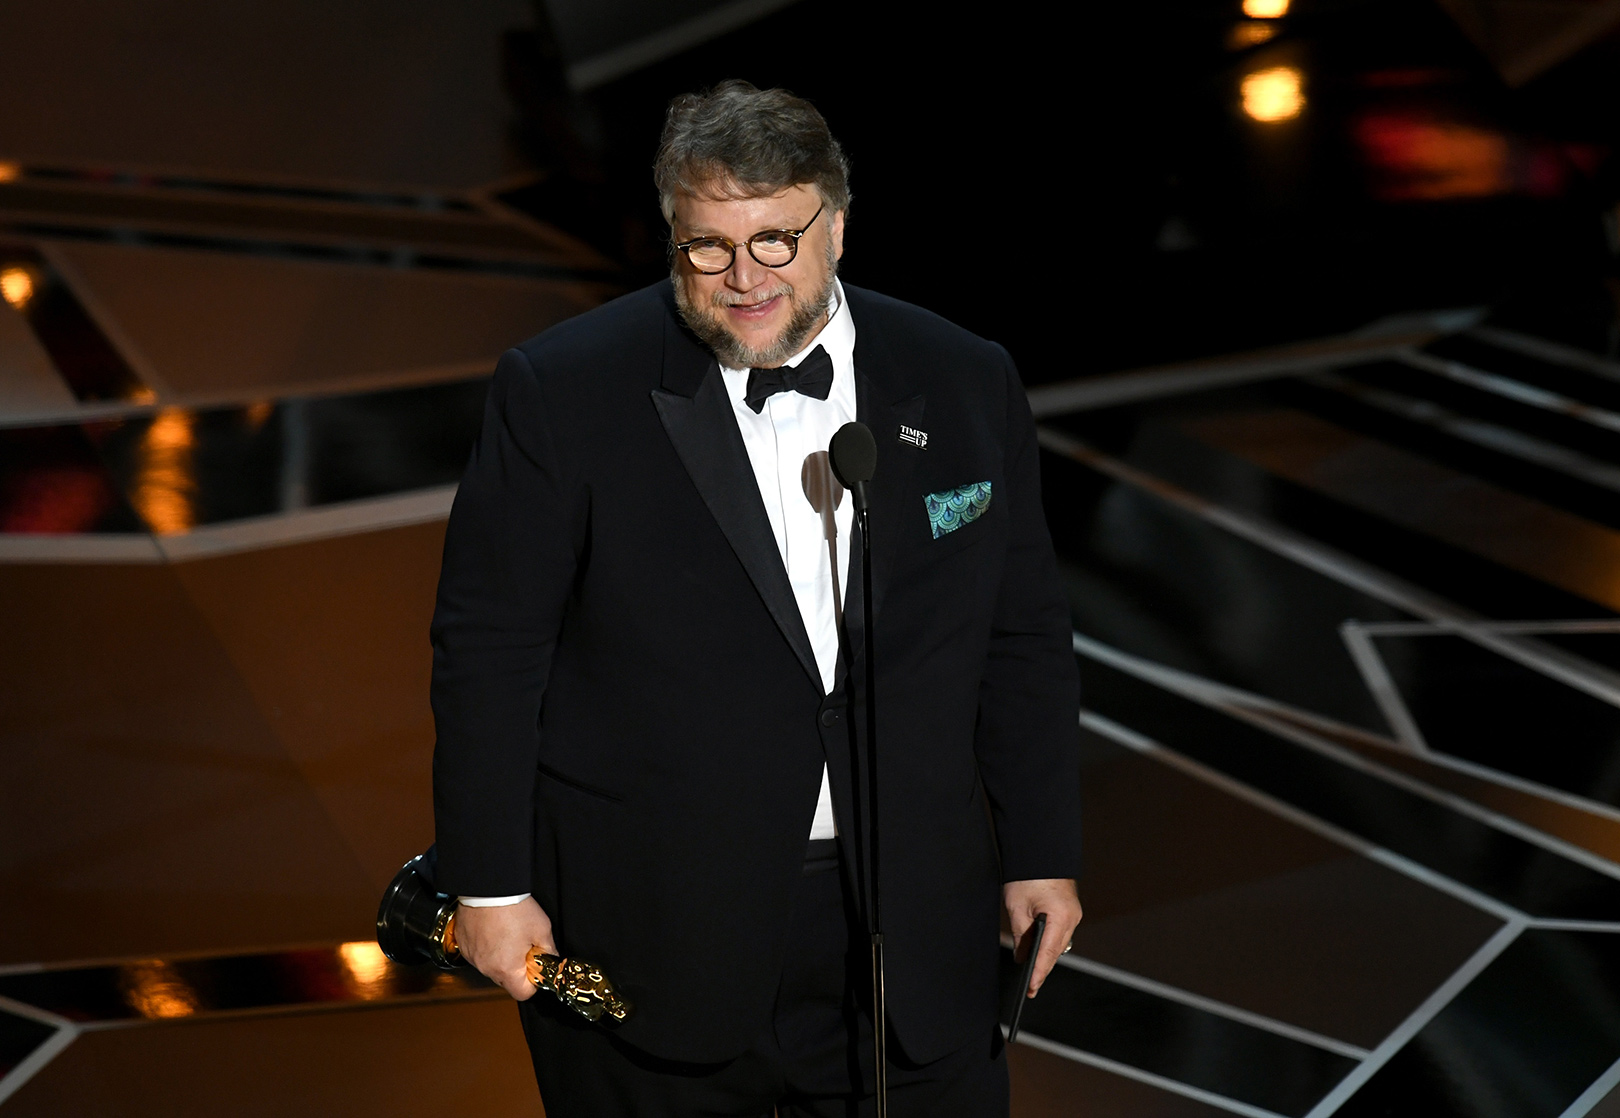 guillermo_del_toro_oscar_getty_inset